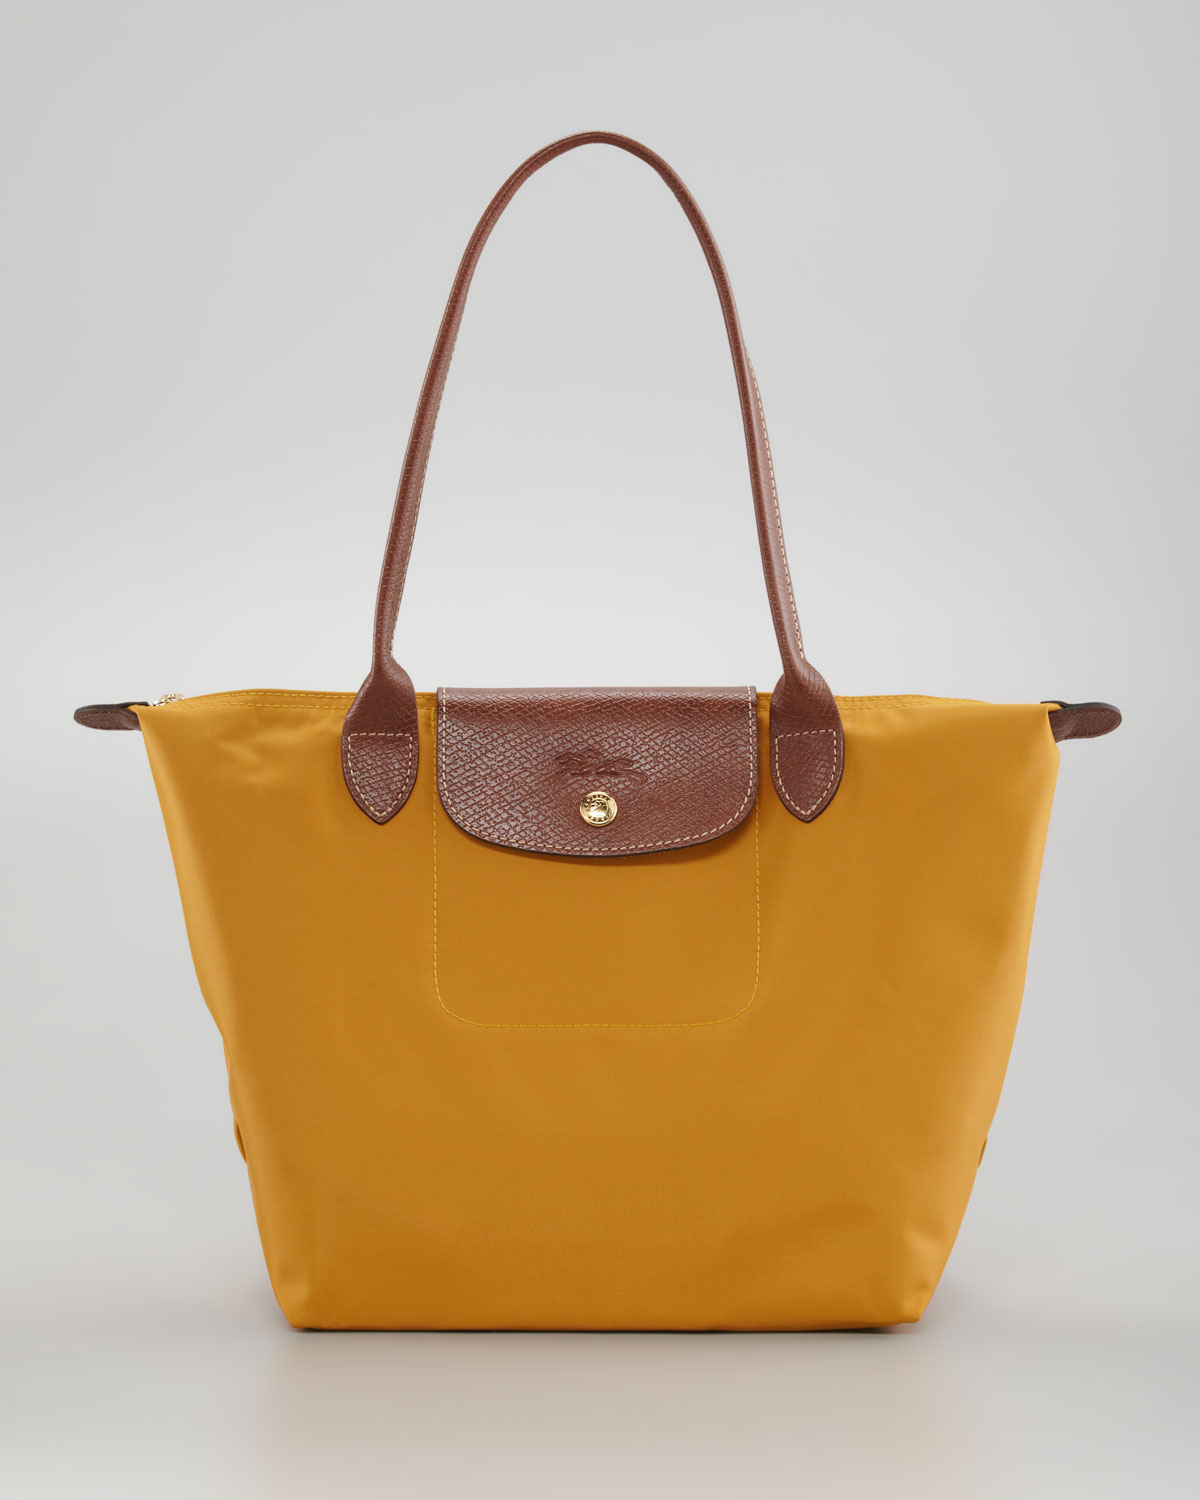 longchamp le pliage small shoulder tote bag in yellow. Black Bedroom Furniture Sets. Home Design Ideas